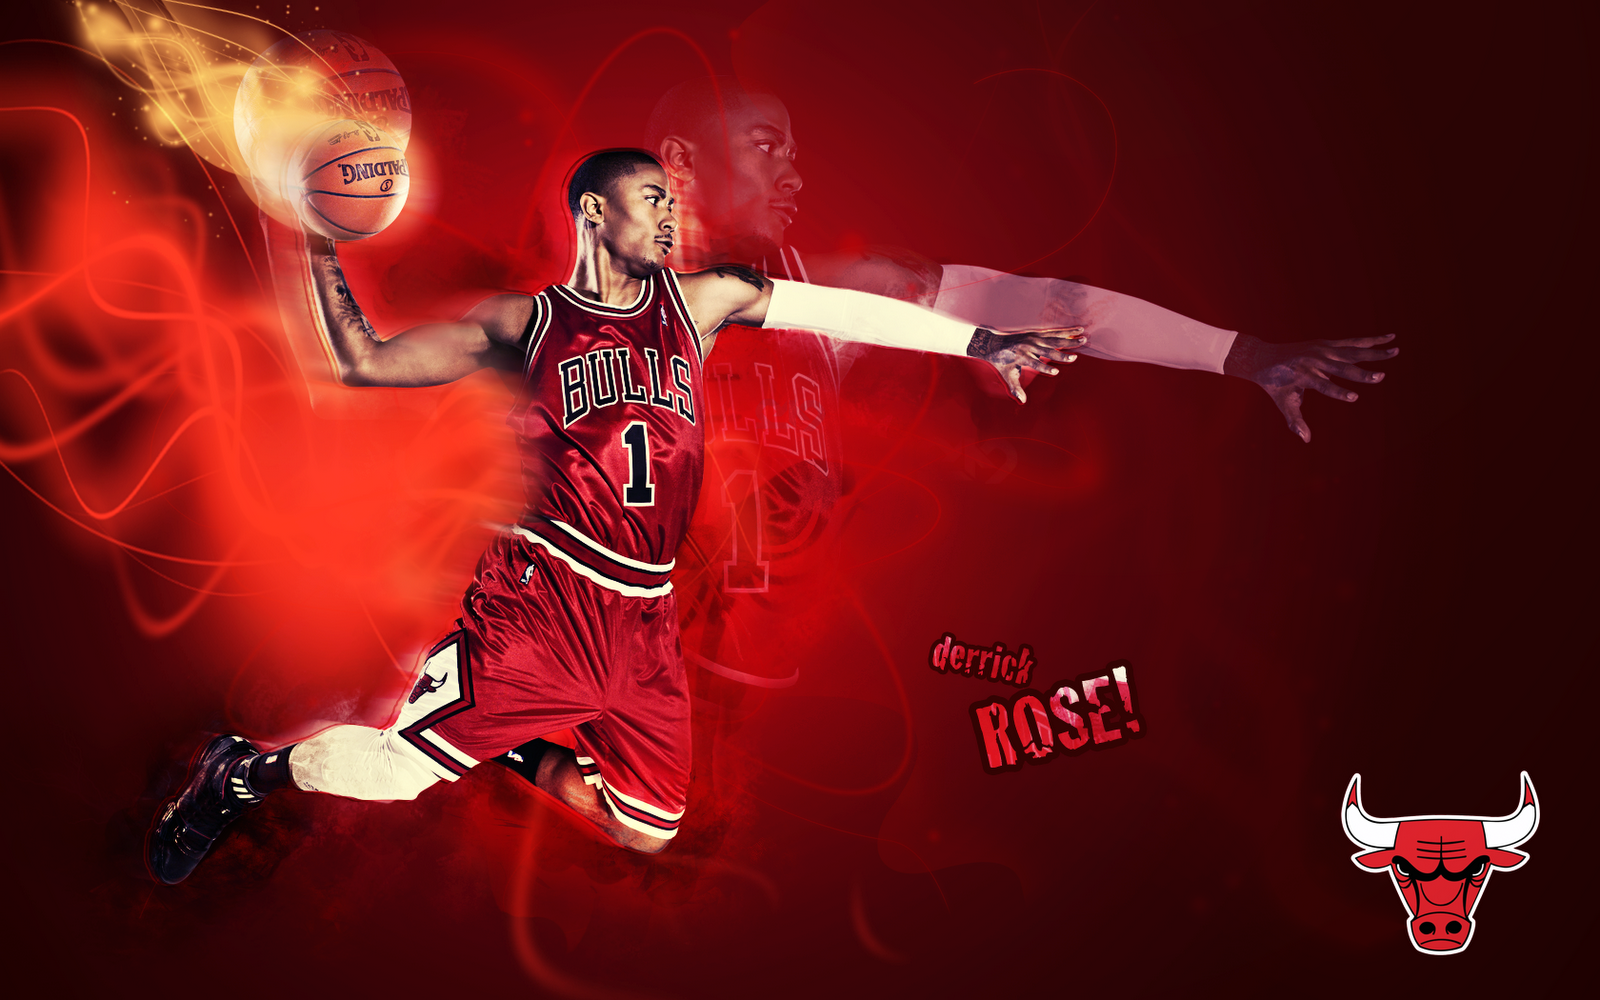 Wallpapers Derrick Rose Dunk Chicago Bulls Wallpaper 1600x1000